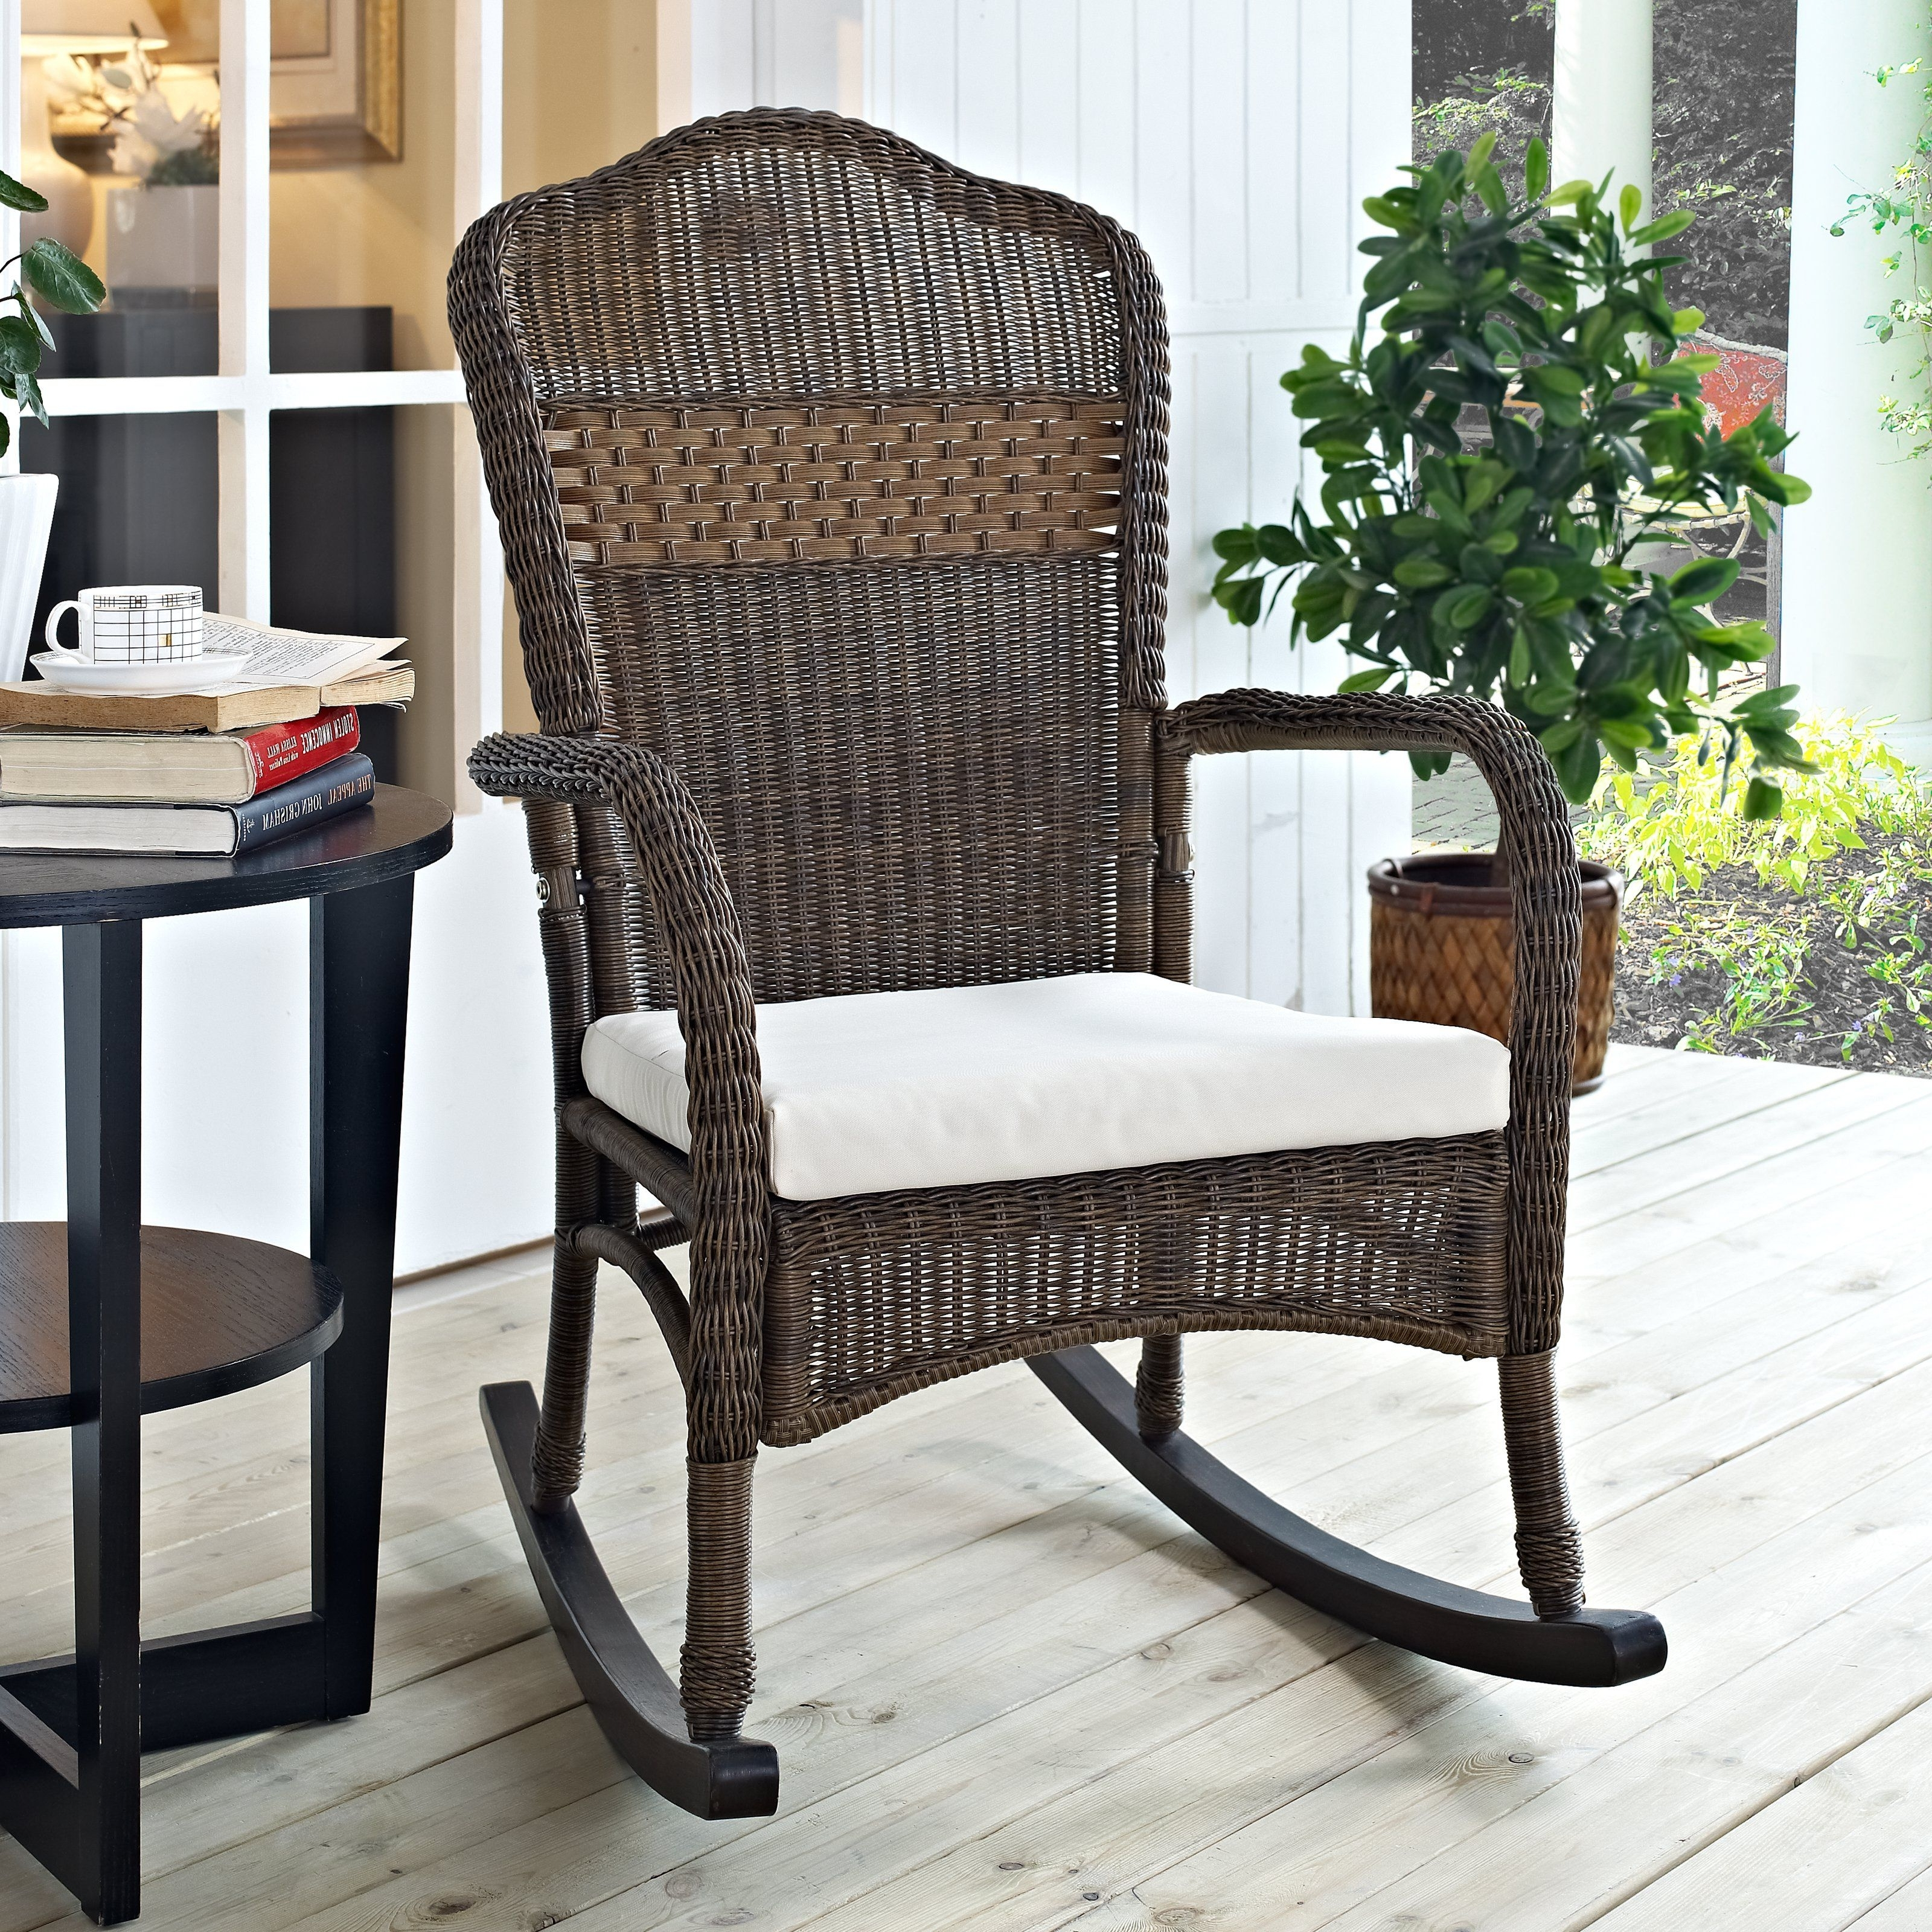 Newest Outdoor Coral Coast Mocha Resin Wicker Rocking Chair With Beige With Wicker Rocking Chairs For Outdoors (View 10 of 20)